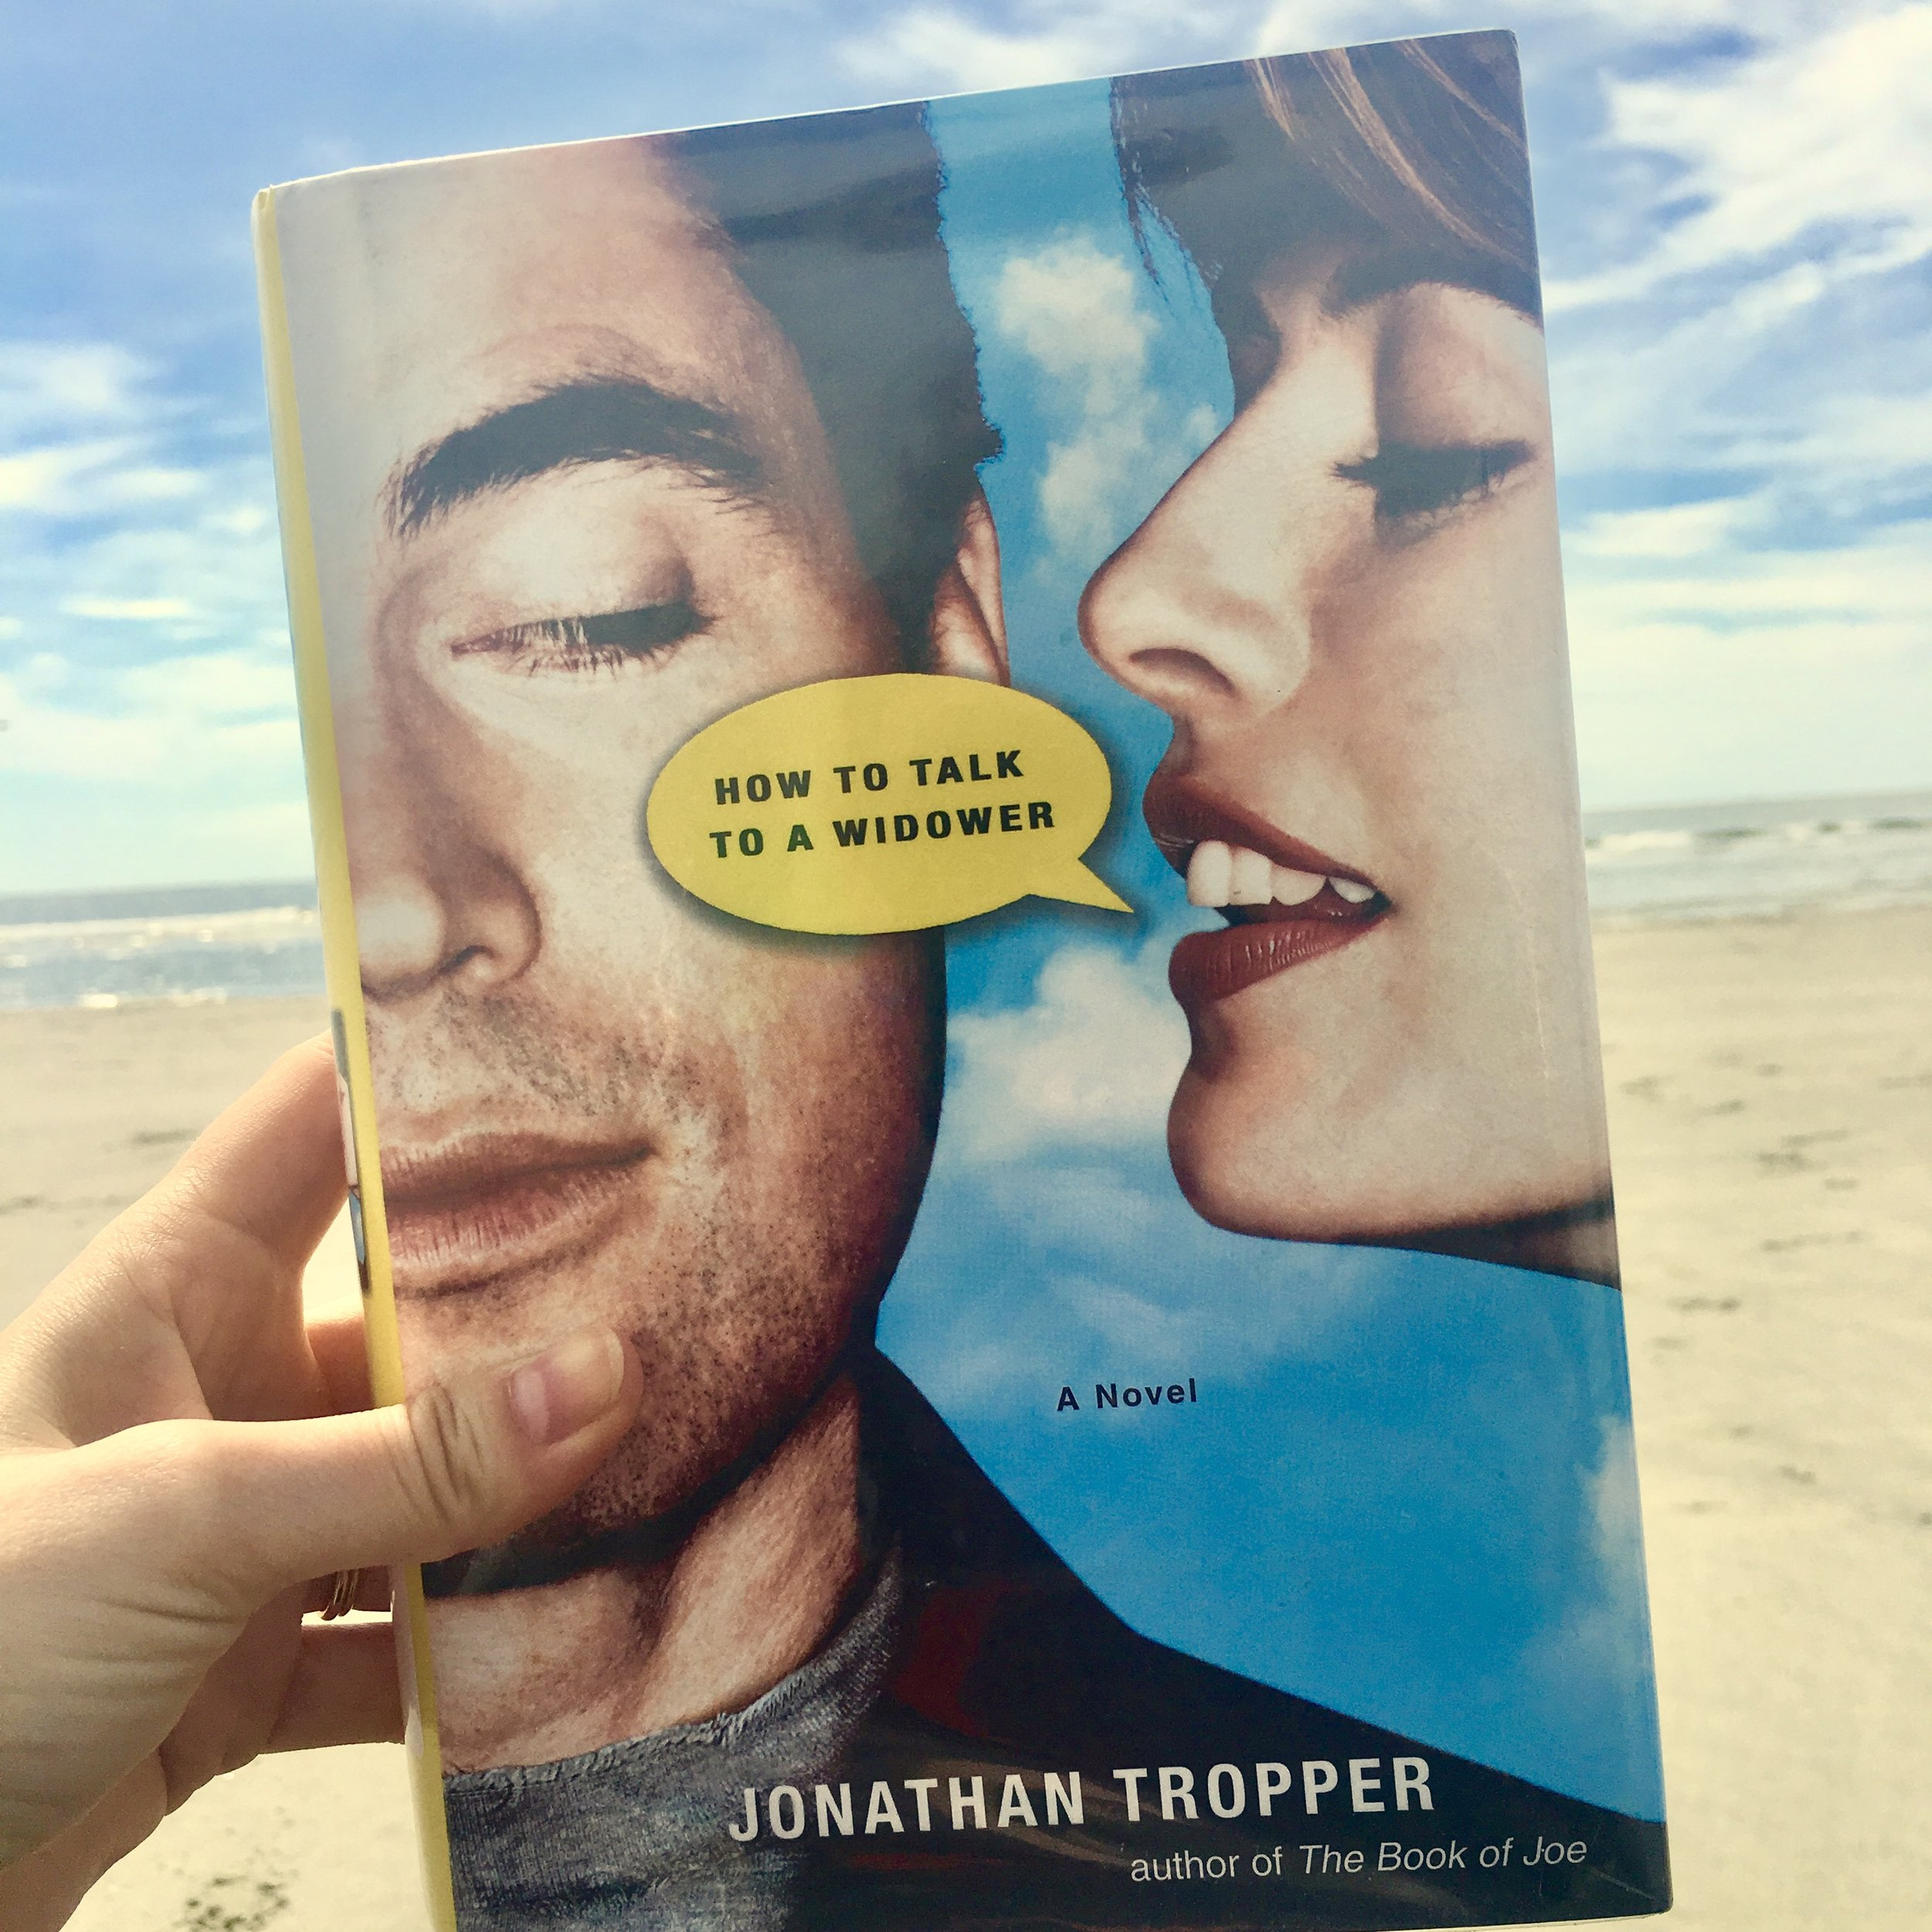 HOW TO TALK TO A WIDOWER - by Jonathan Tropper